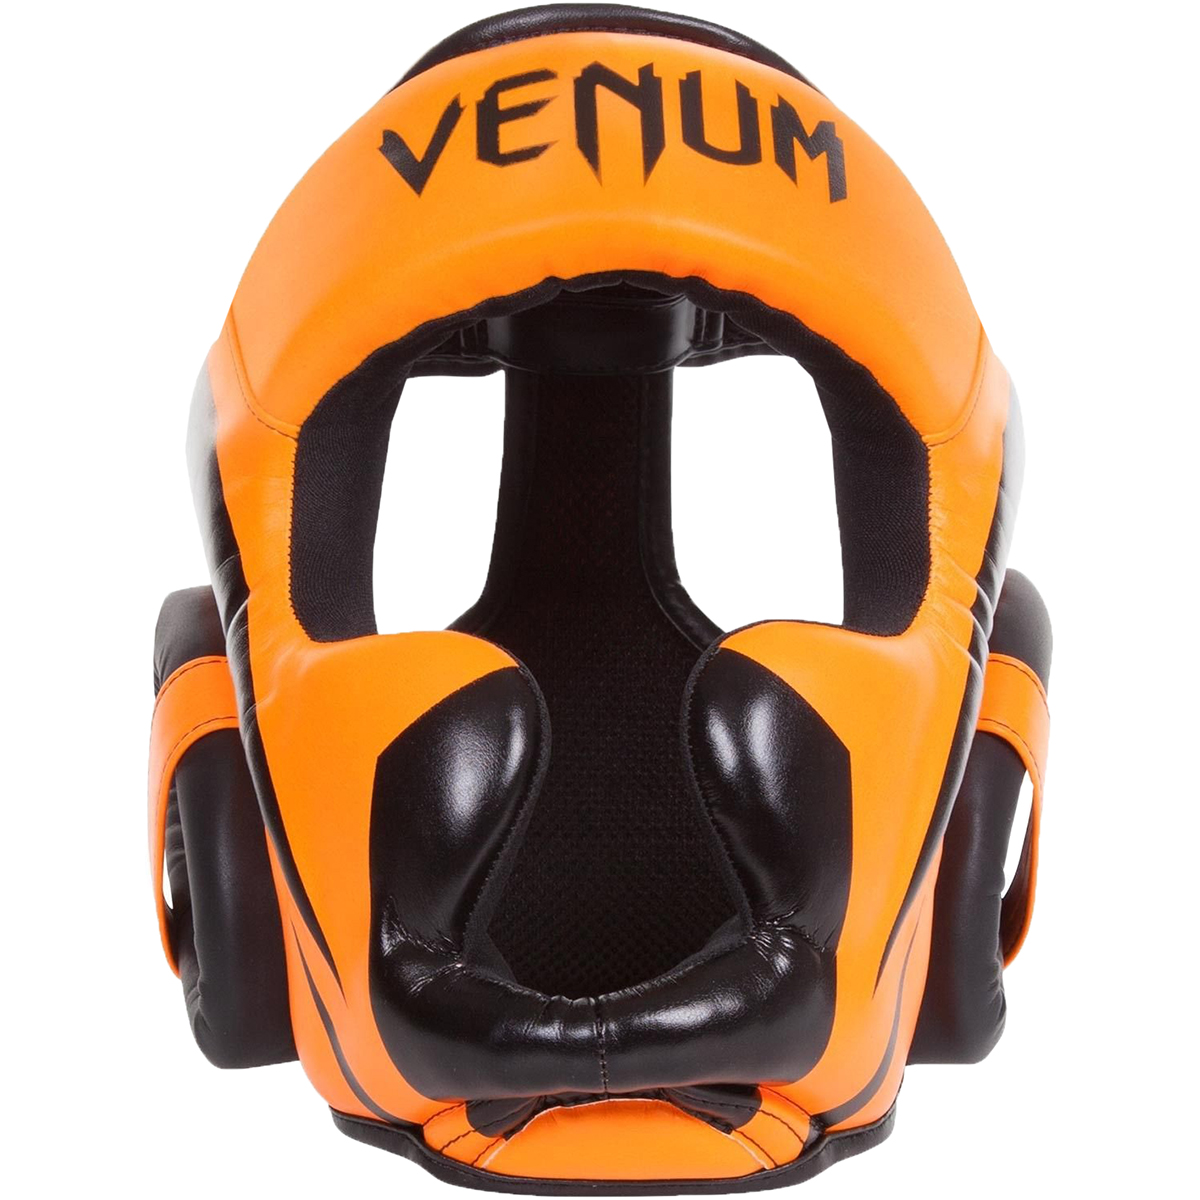 Venum-Elite-Boxing-Headgear thumbnail 31